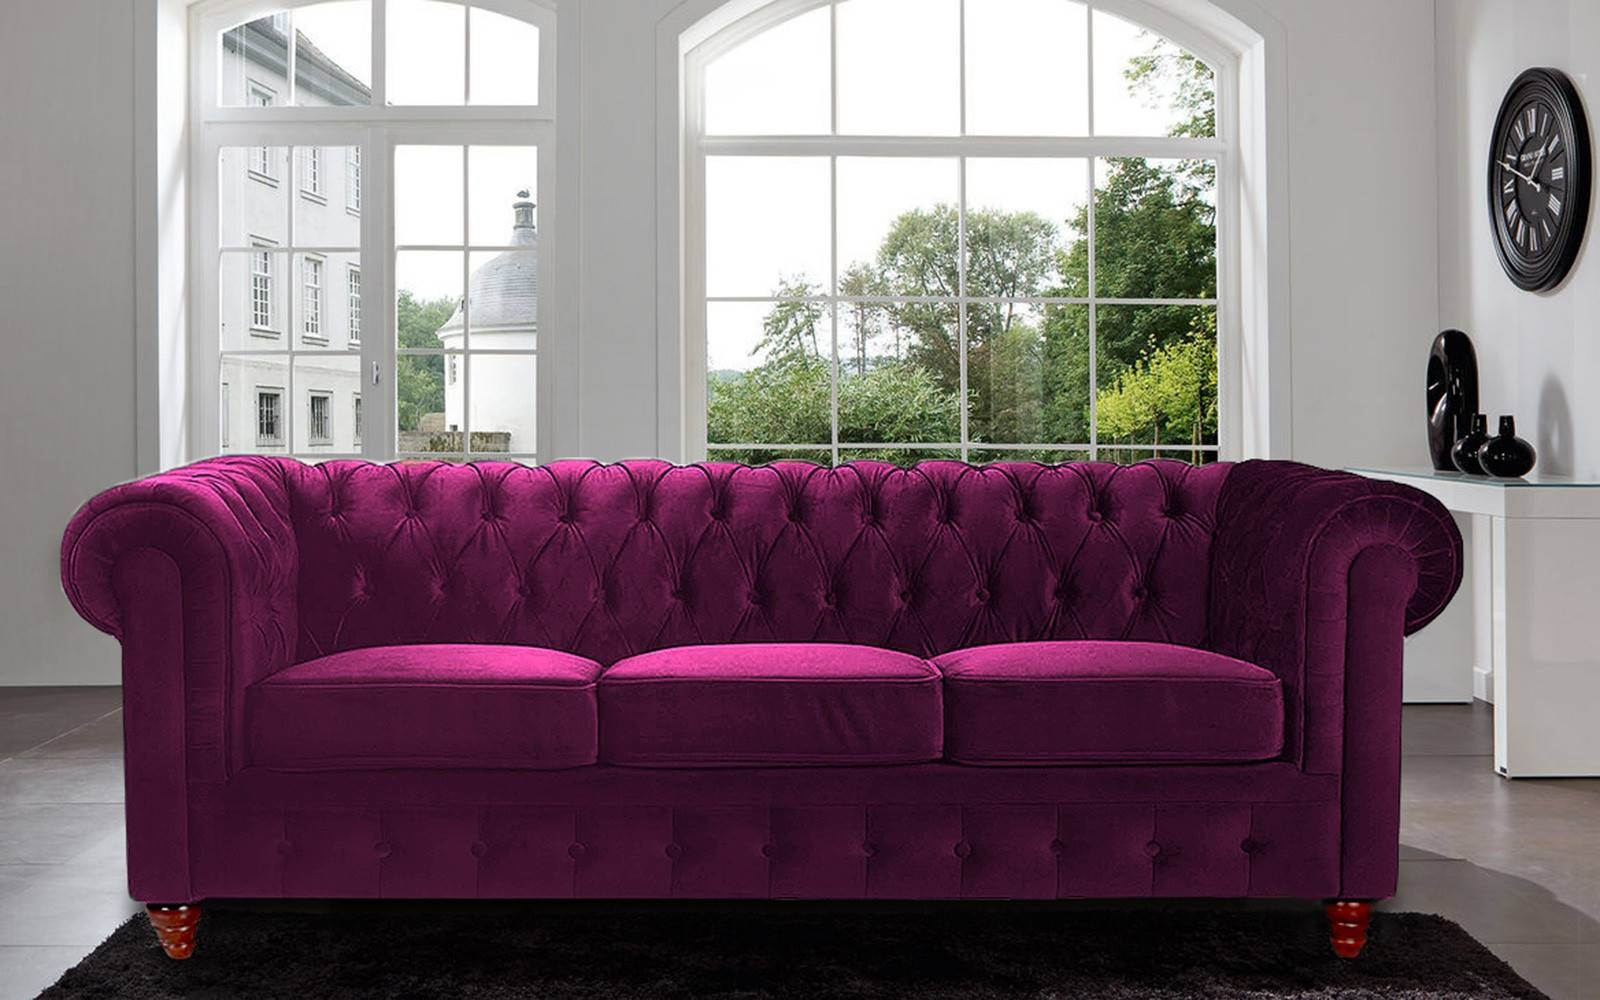 Classic Scroll Arm Tufted Velvet Chesterfield Large Sofa - Walmart pertaining to Velvet Purple Sofas (Image 11 of 30)